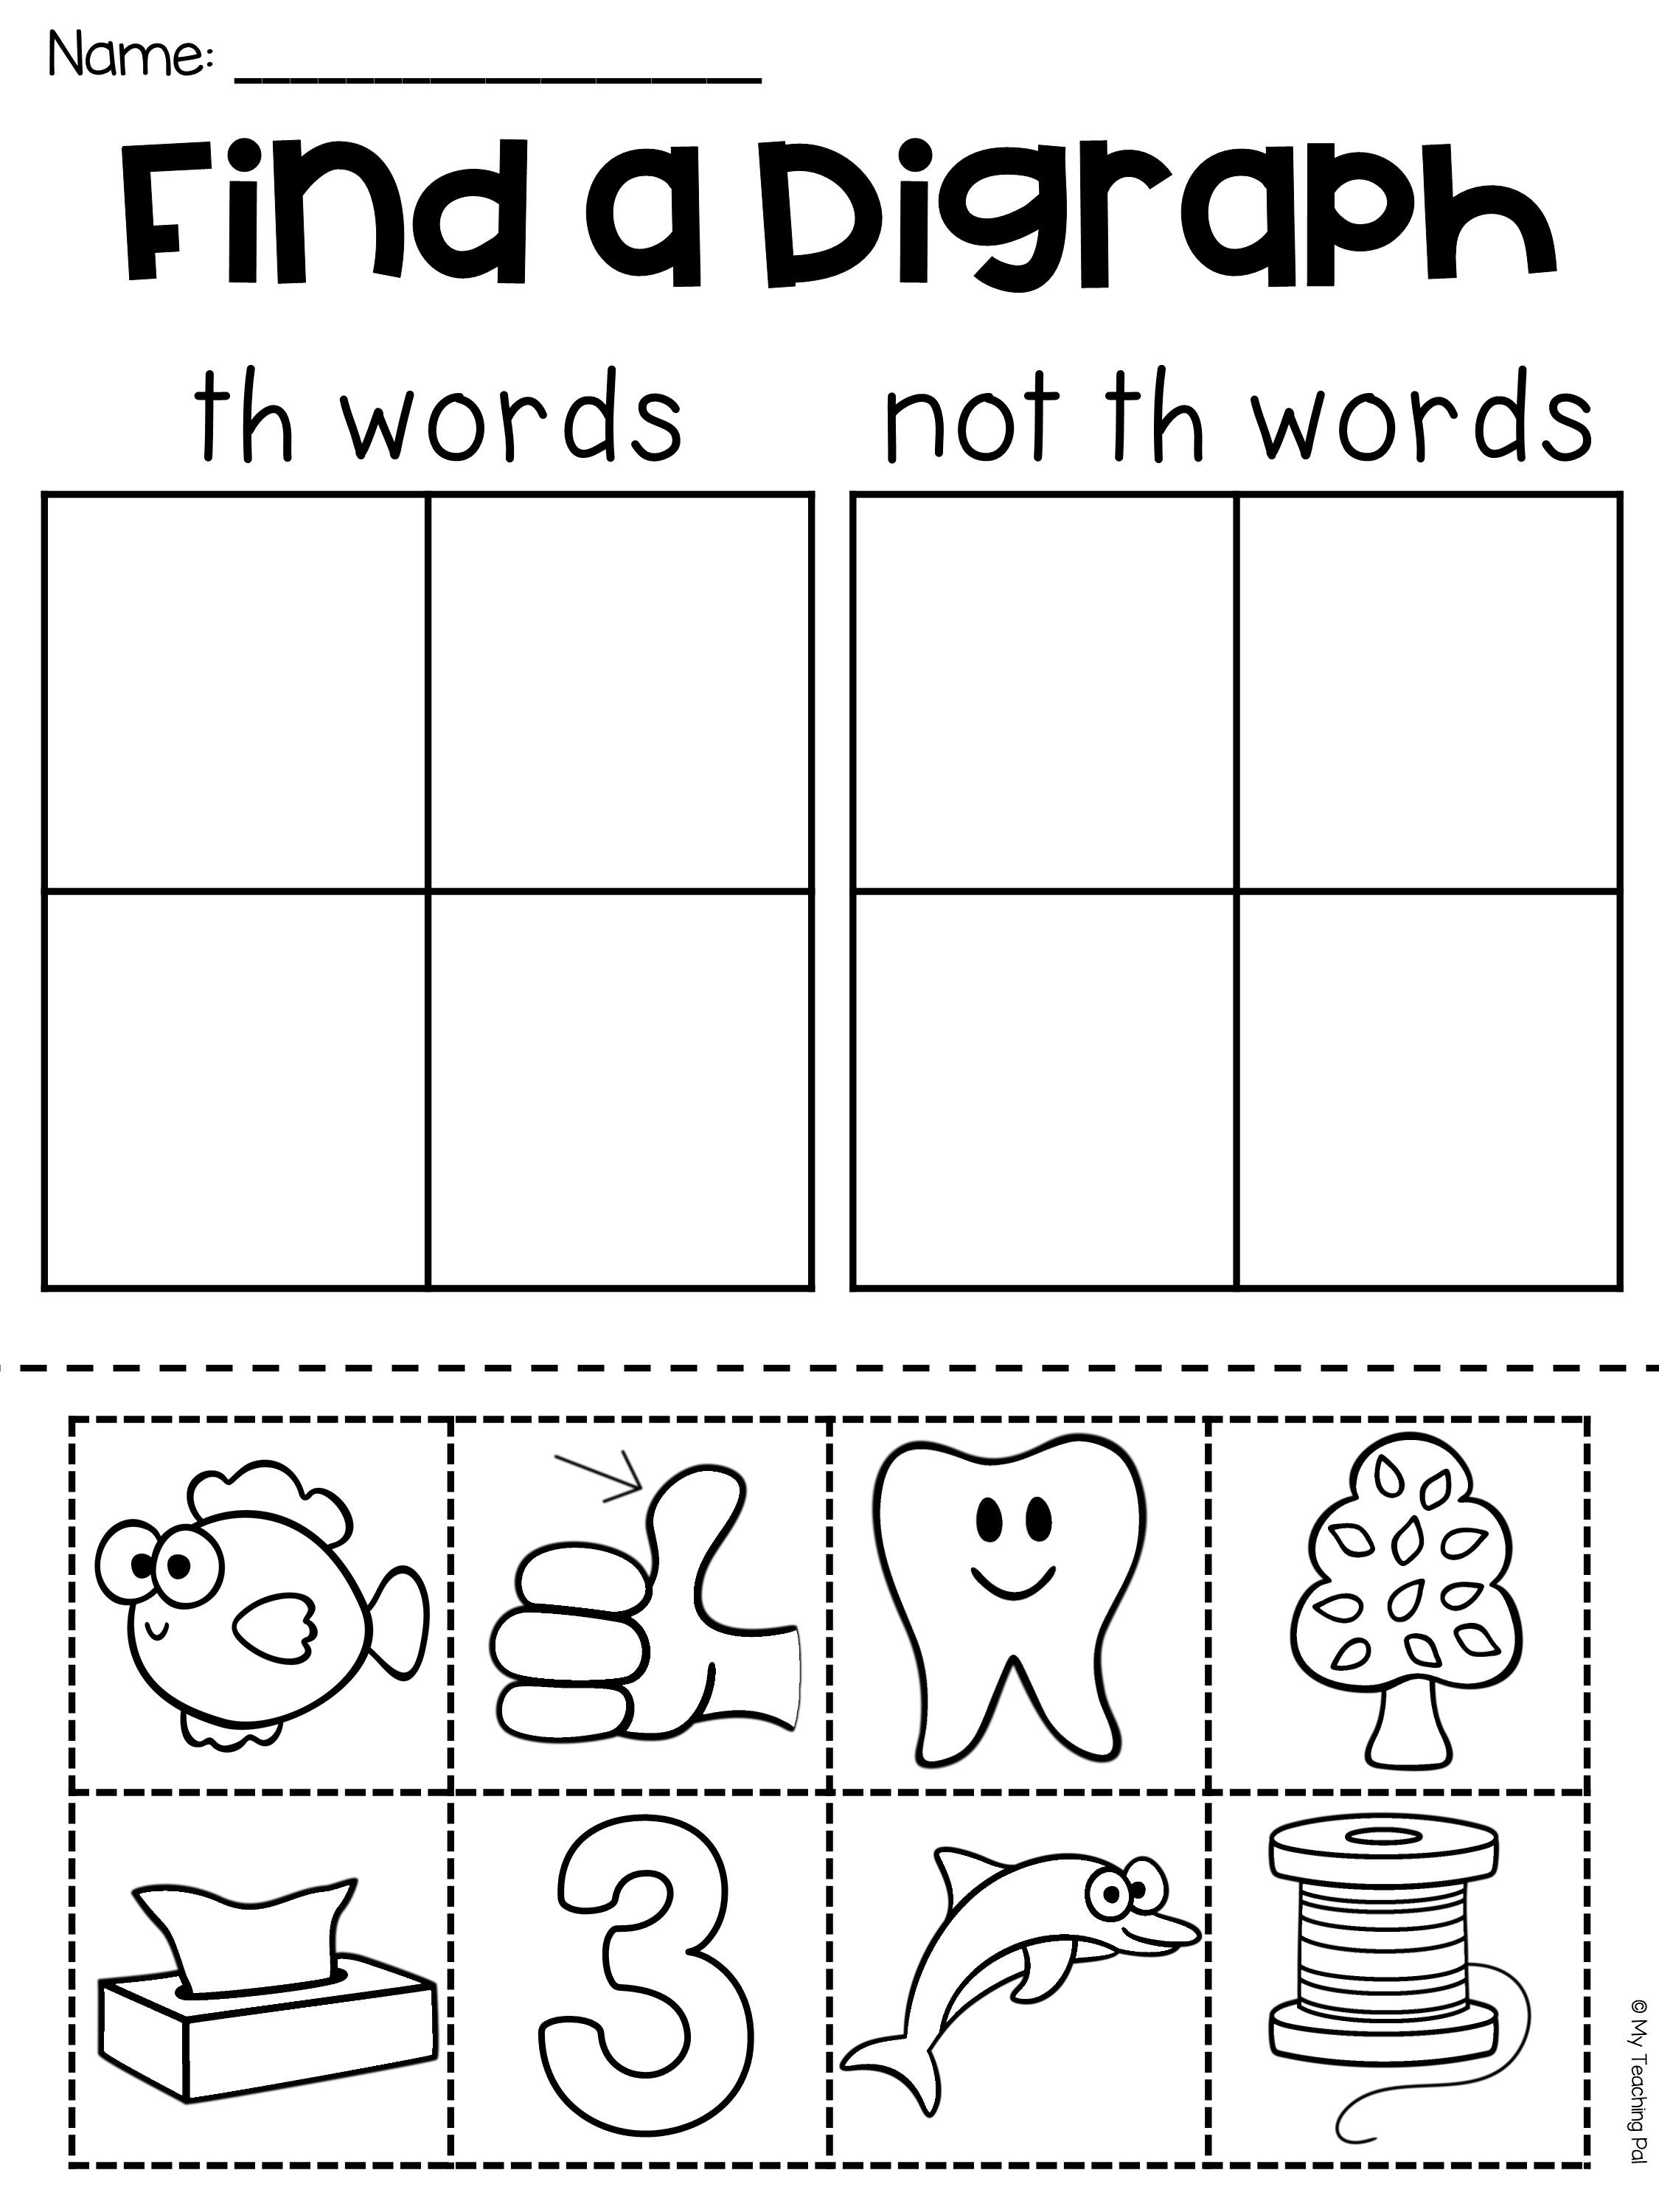 Worksheets Th Digraph Worksheets th worksheet packet digraphs worksheets my tpt store pinterest your students will have so much fun completing these digraph the features 29 diverse works